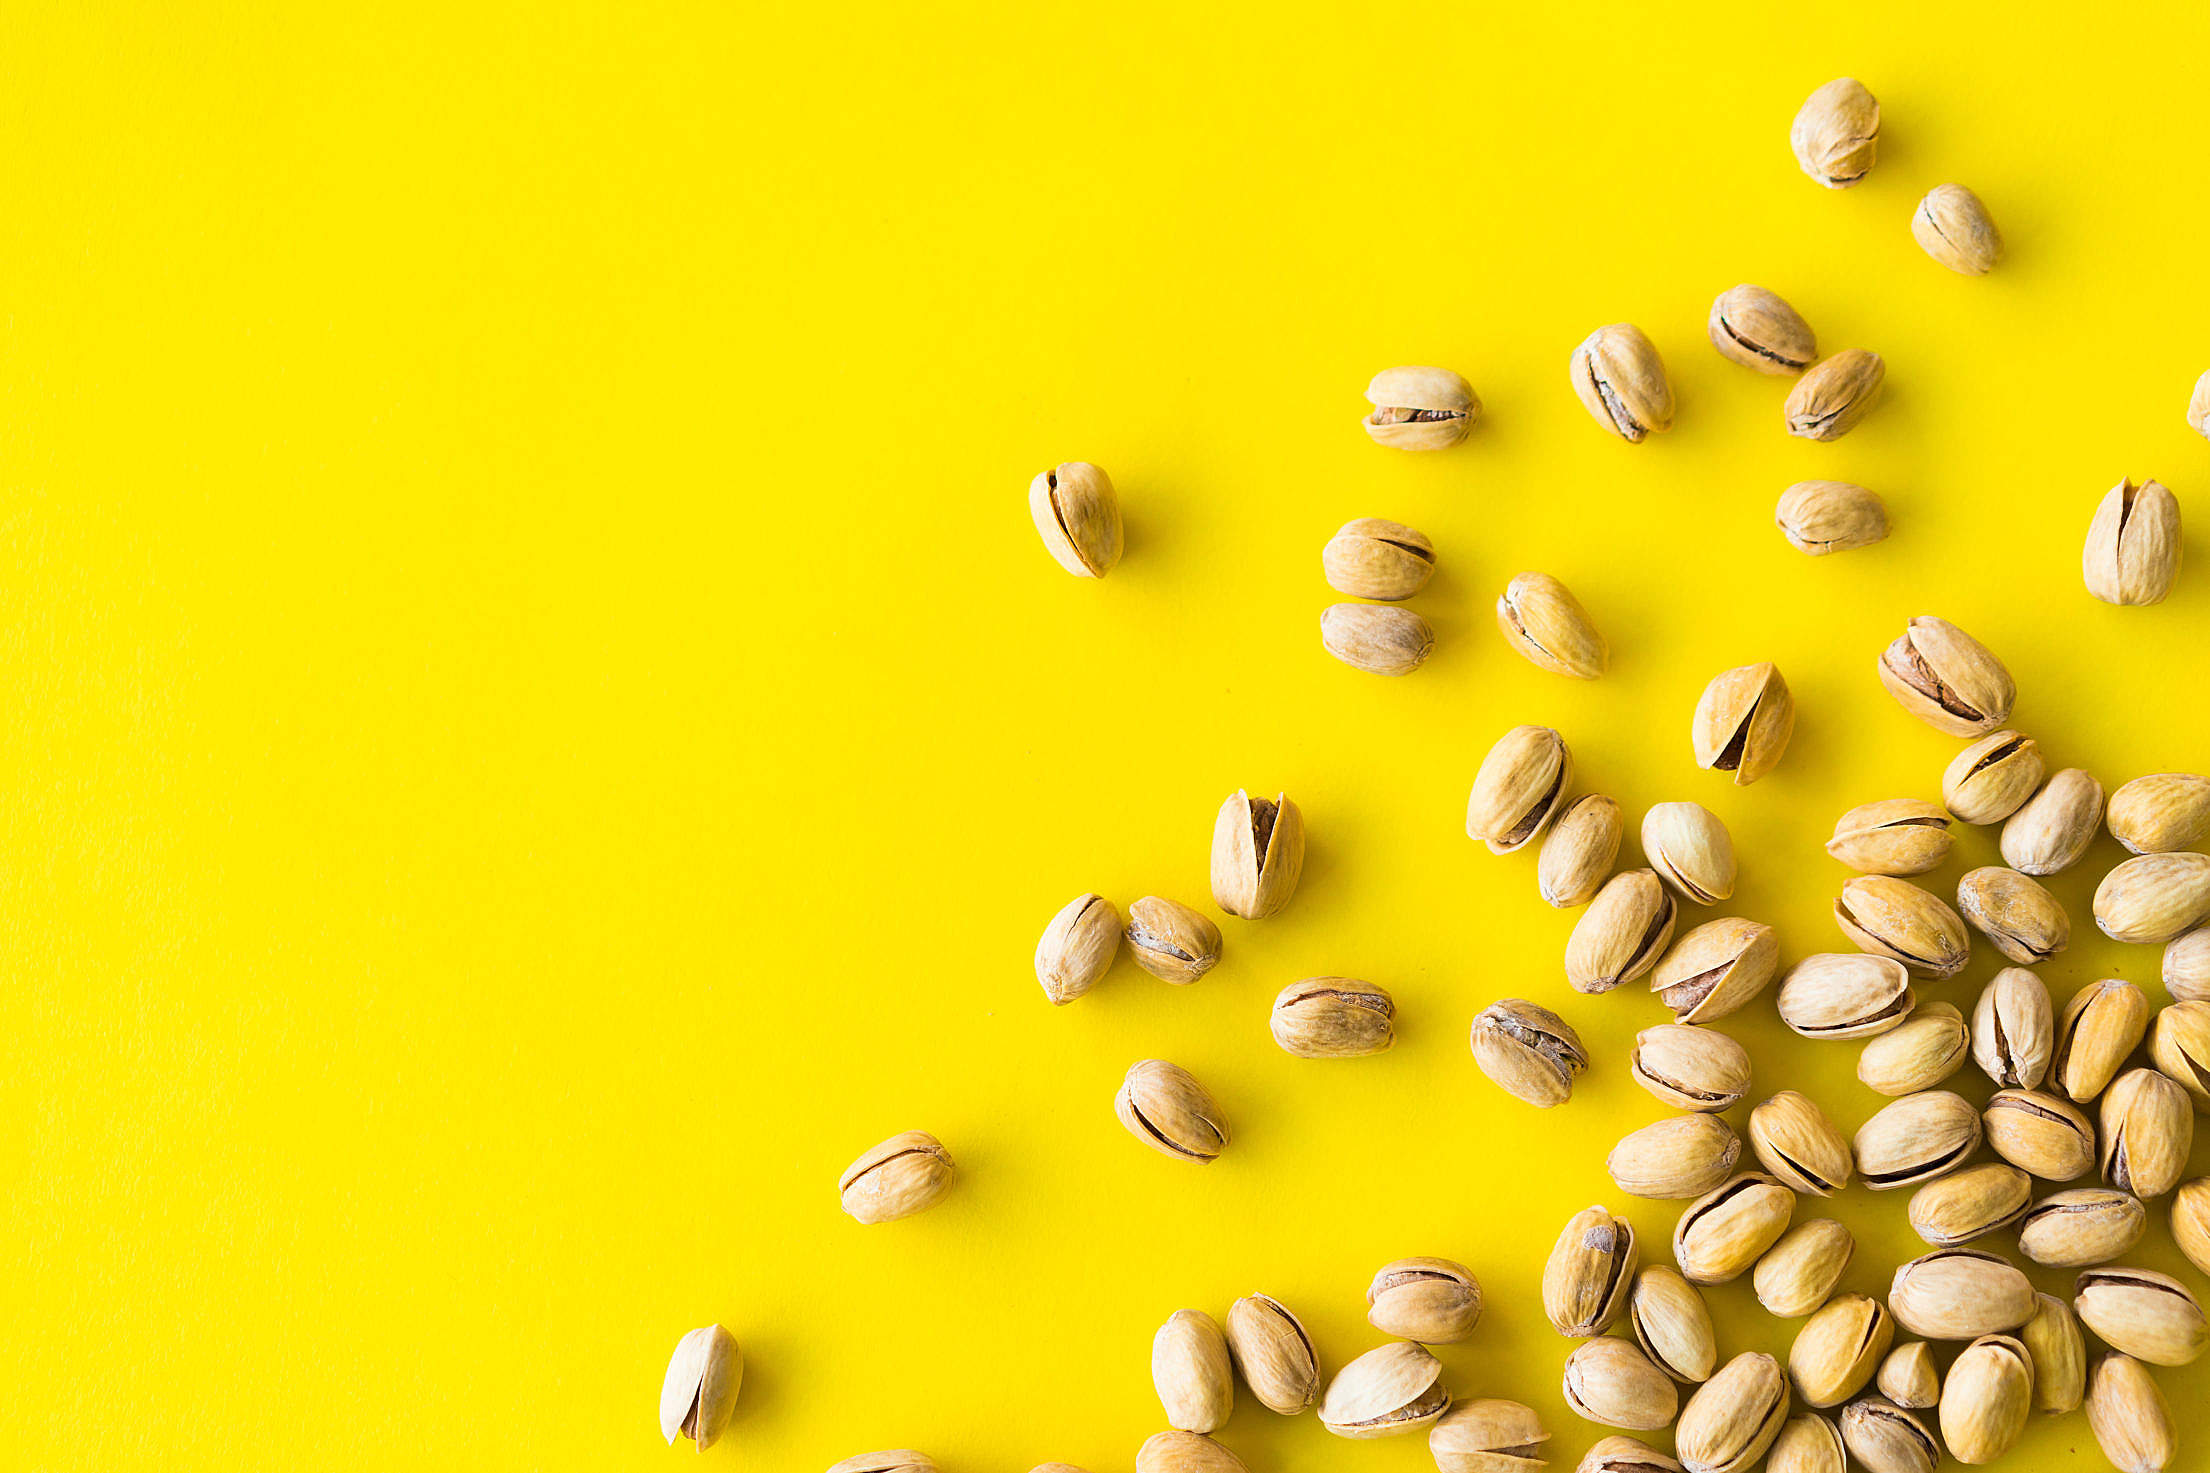 (click to download) Pistachios FREE Stock Photo